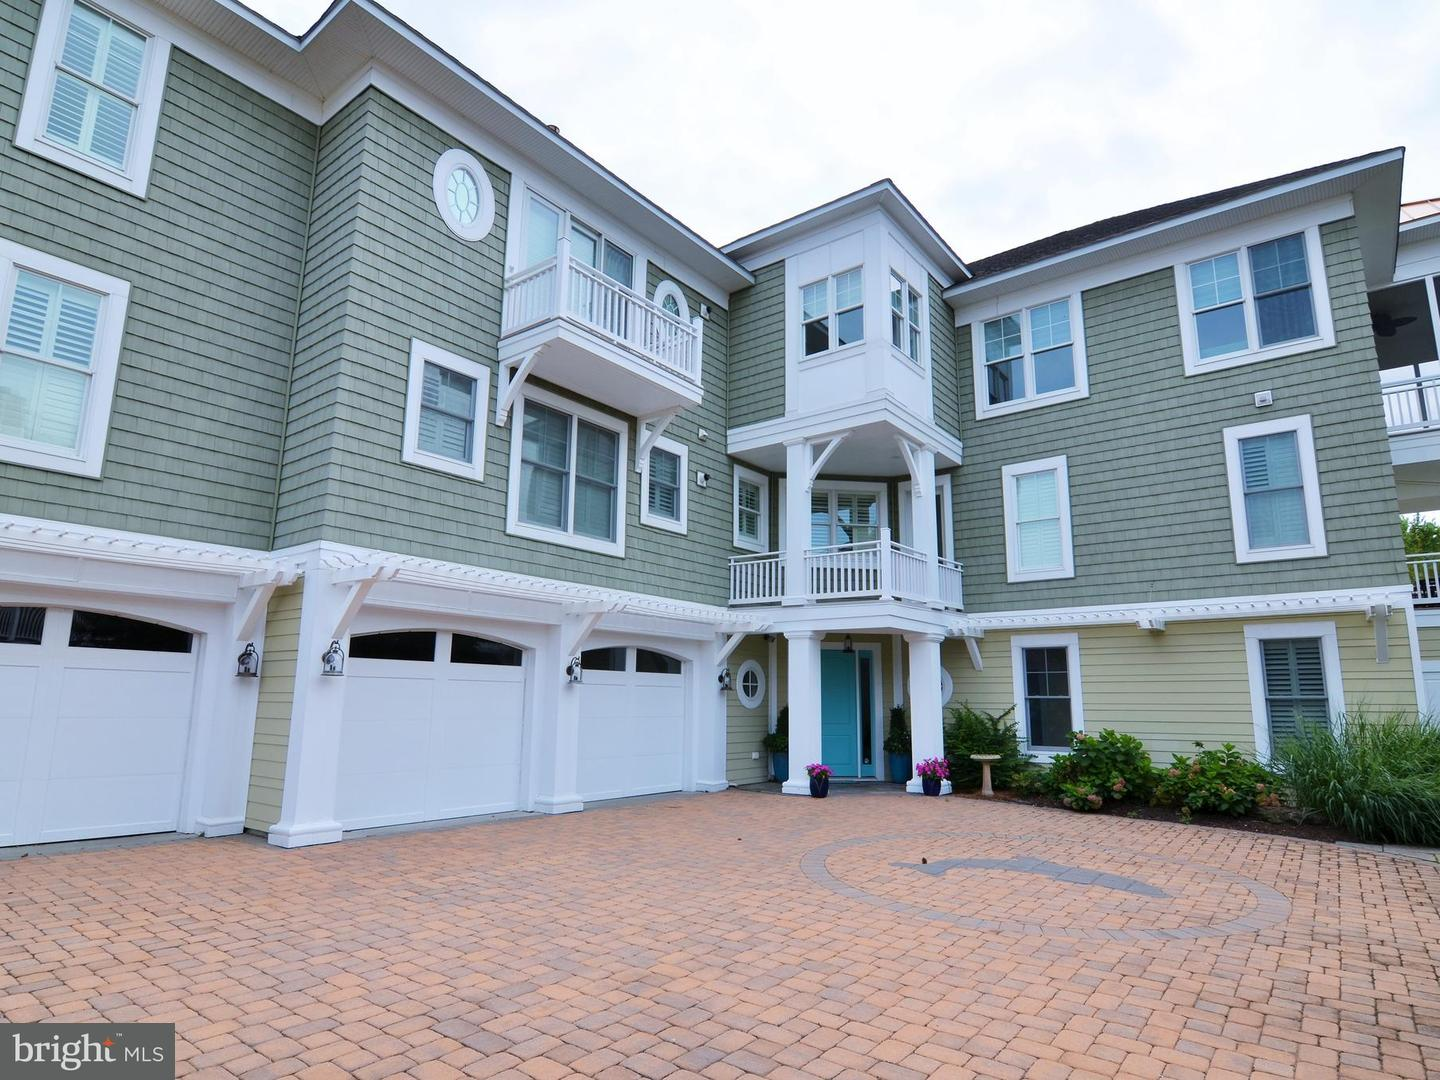 1002293530-300500805784-2018-09-25-15-08-24 31 Hall Ave | Rehoboth Beach, DE Real Estate For Sale | MLS# 1002293530  - 1st Choice Properties